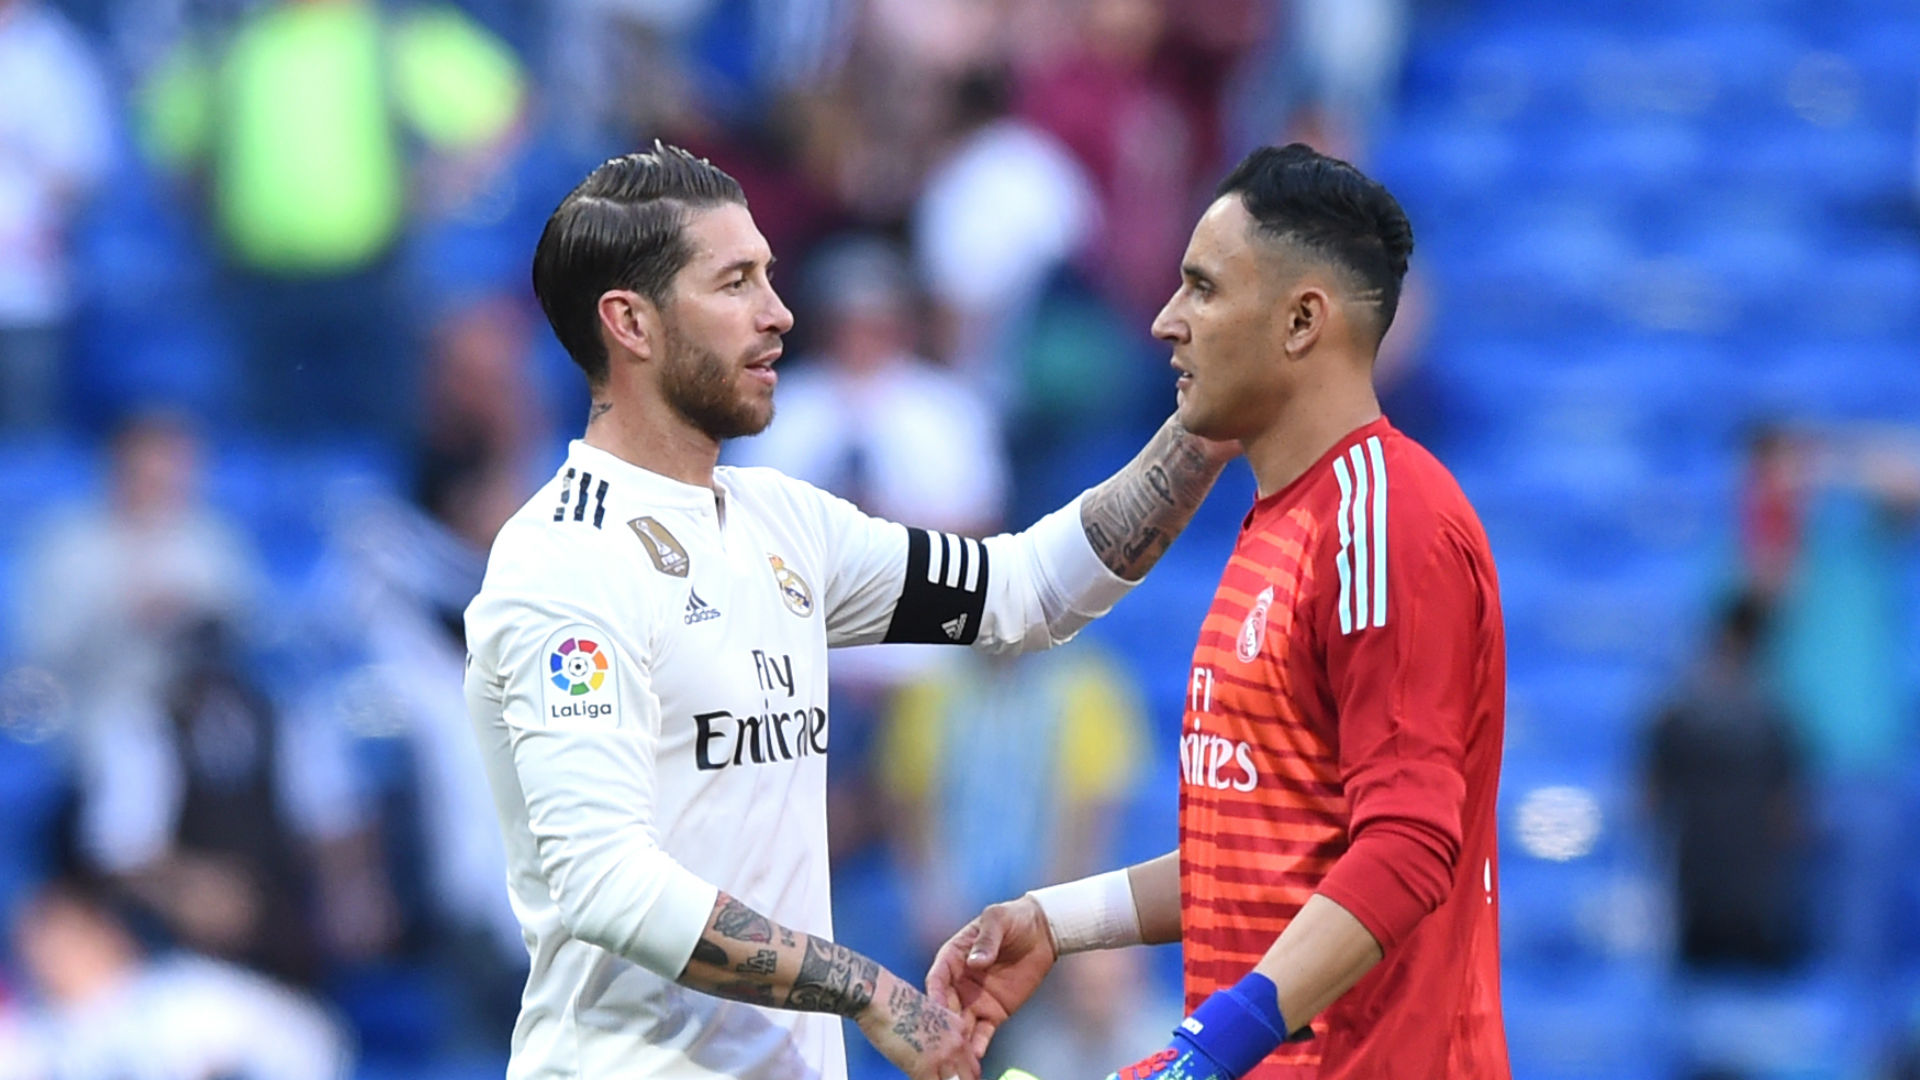 Navas slams critics and delights in Zidane reunion